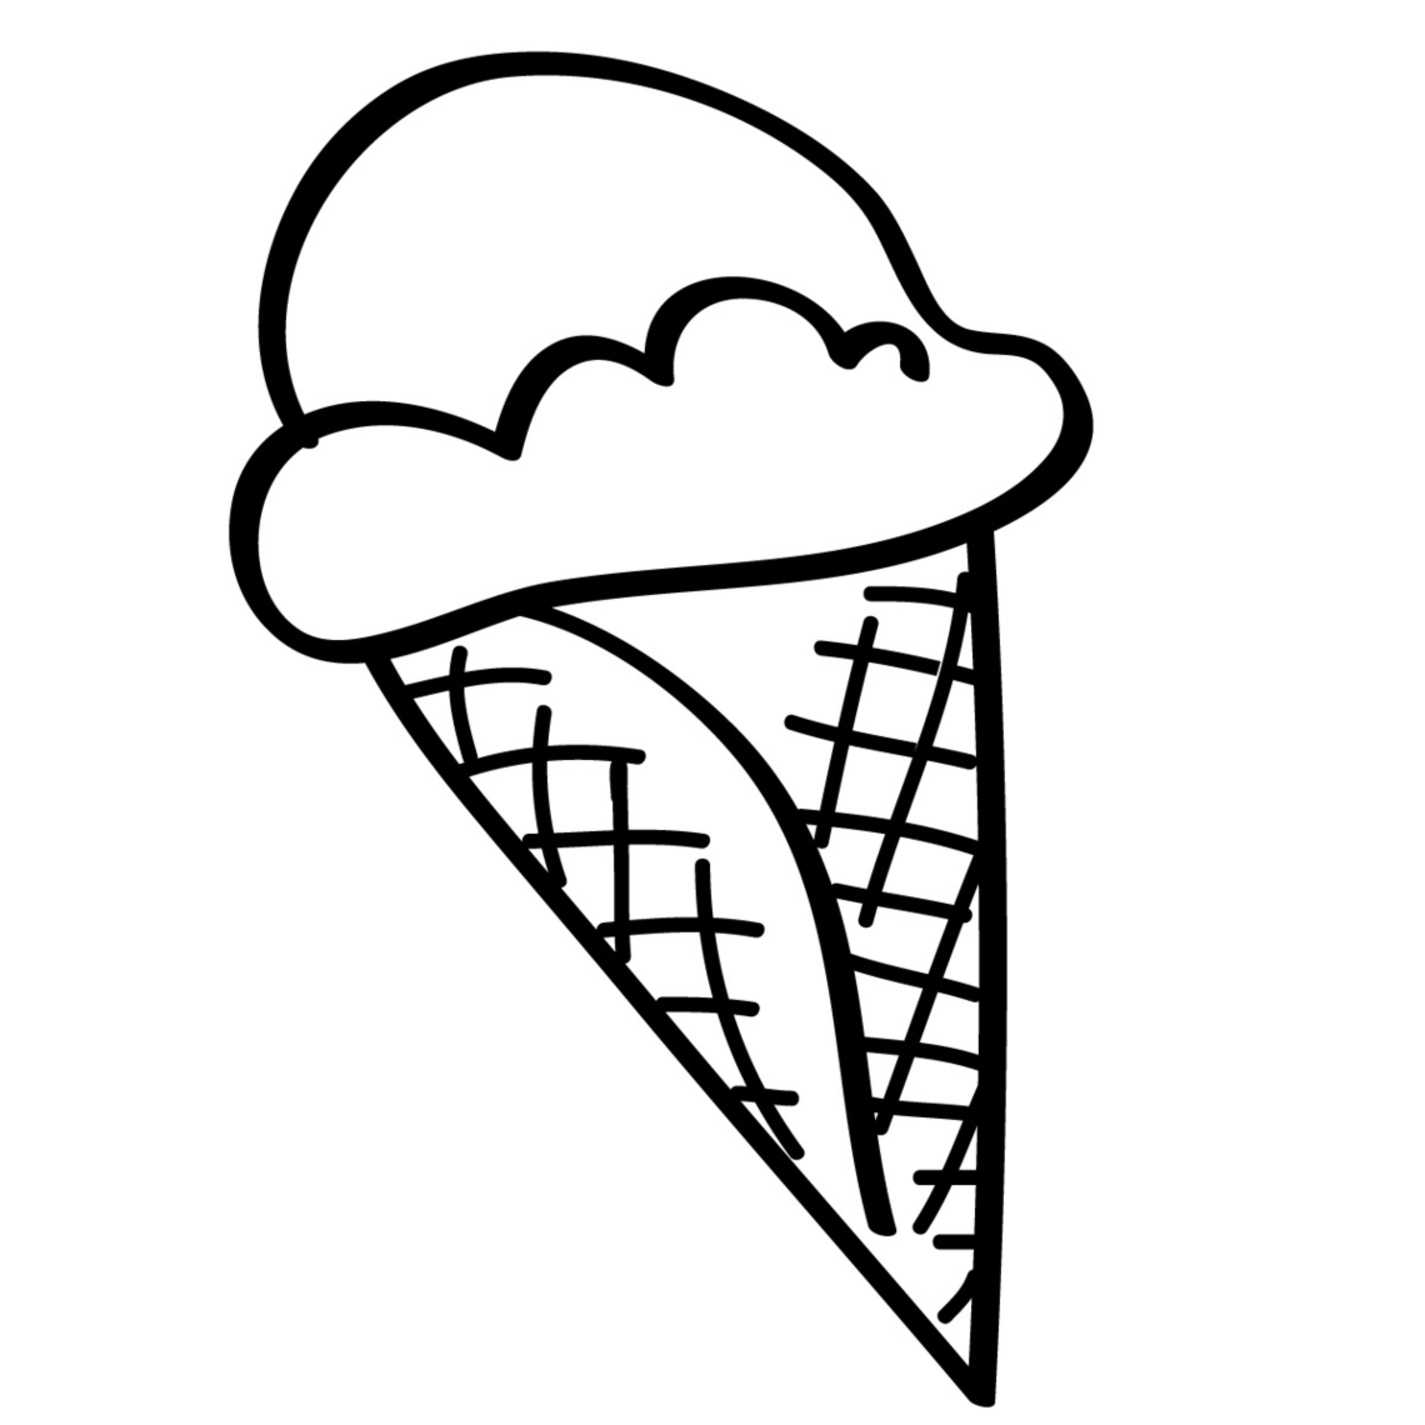 coloring page printable ice cream free printable ice cream coloring pages for kids ice page printable coloring cream